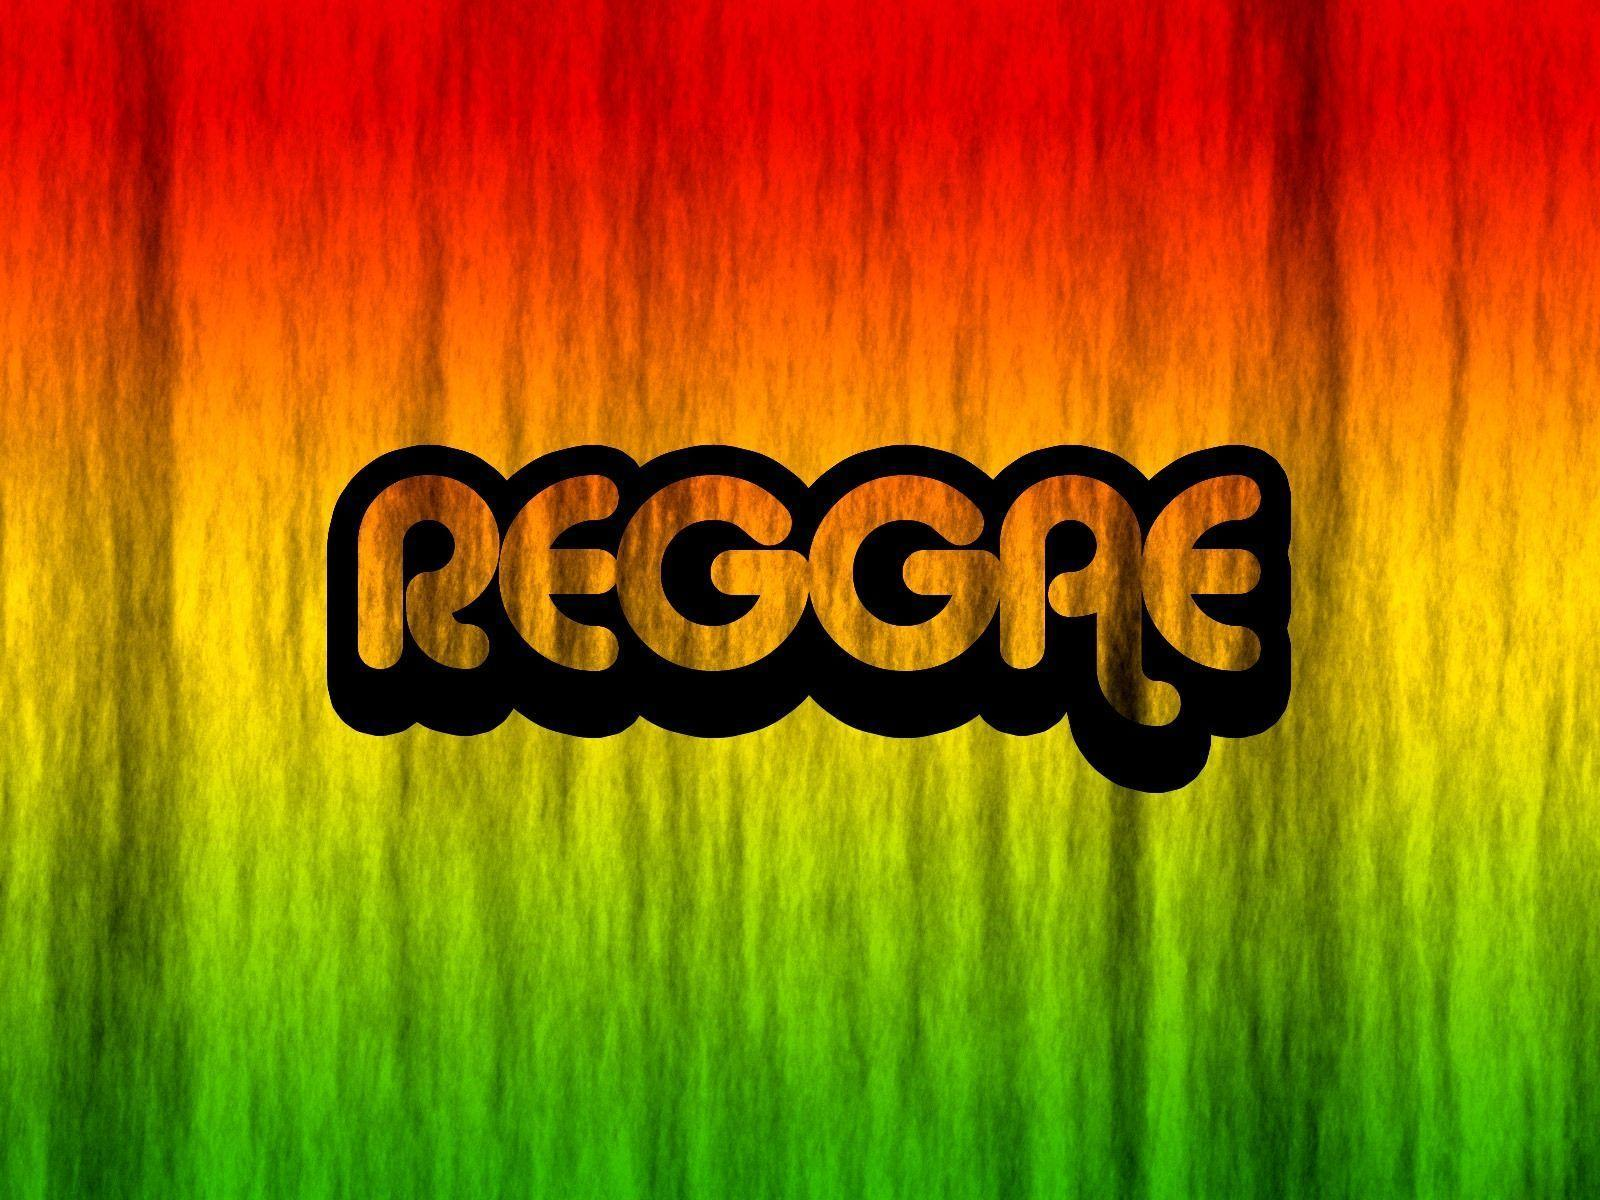 Wallpaper iphone rasta - Hd Reggae Wallpapers Reggae Iphone Wallpaper Hd Wallpapers Hd